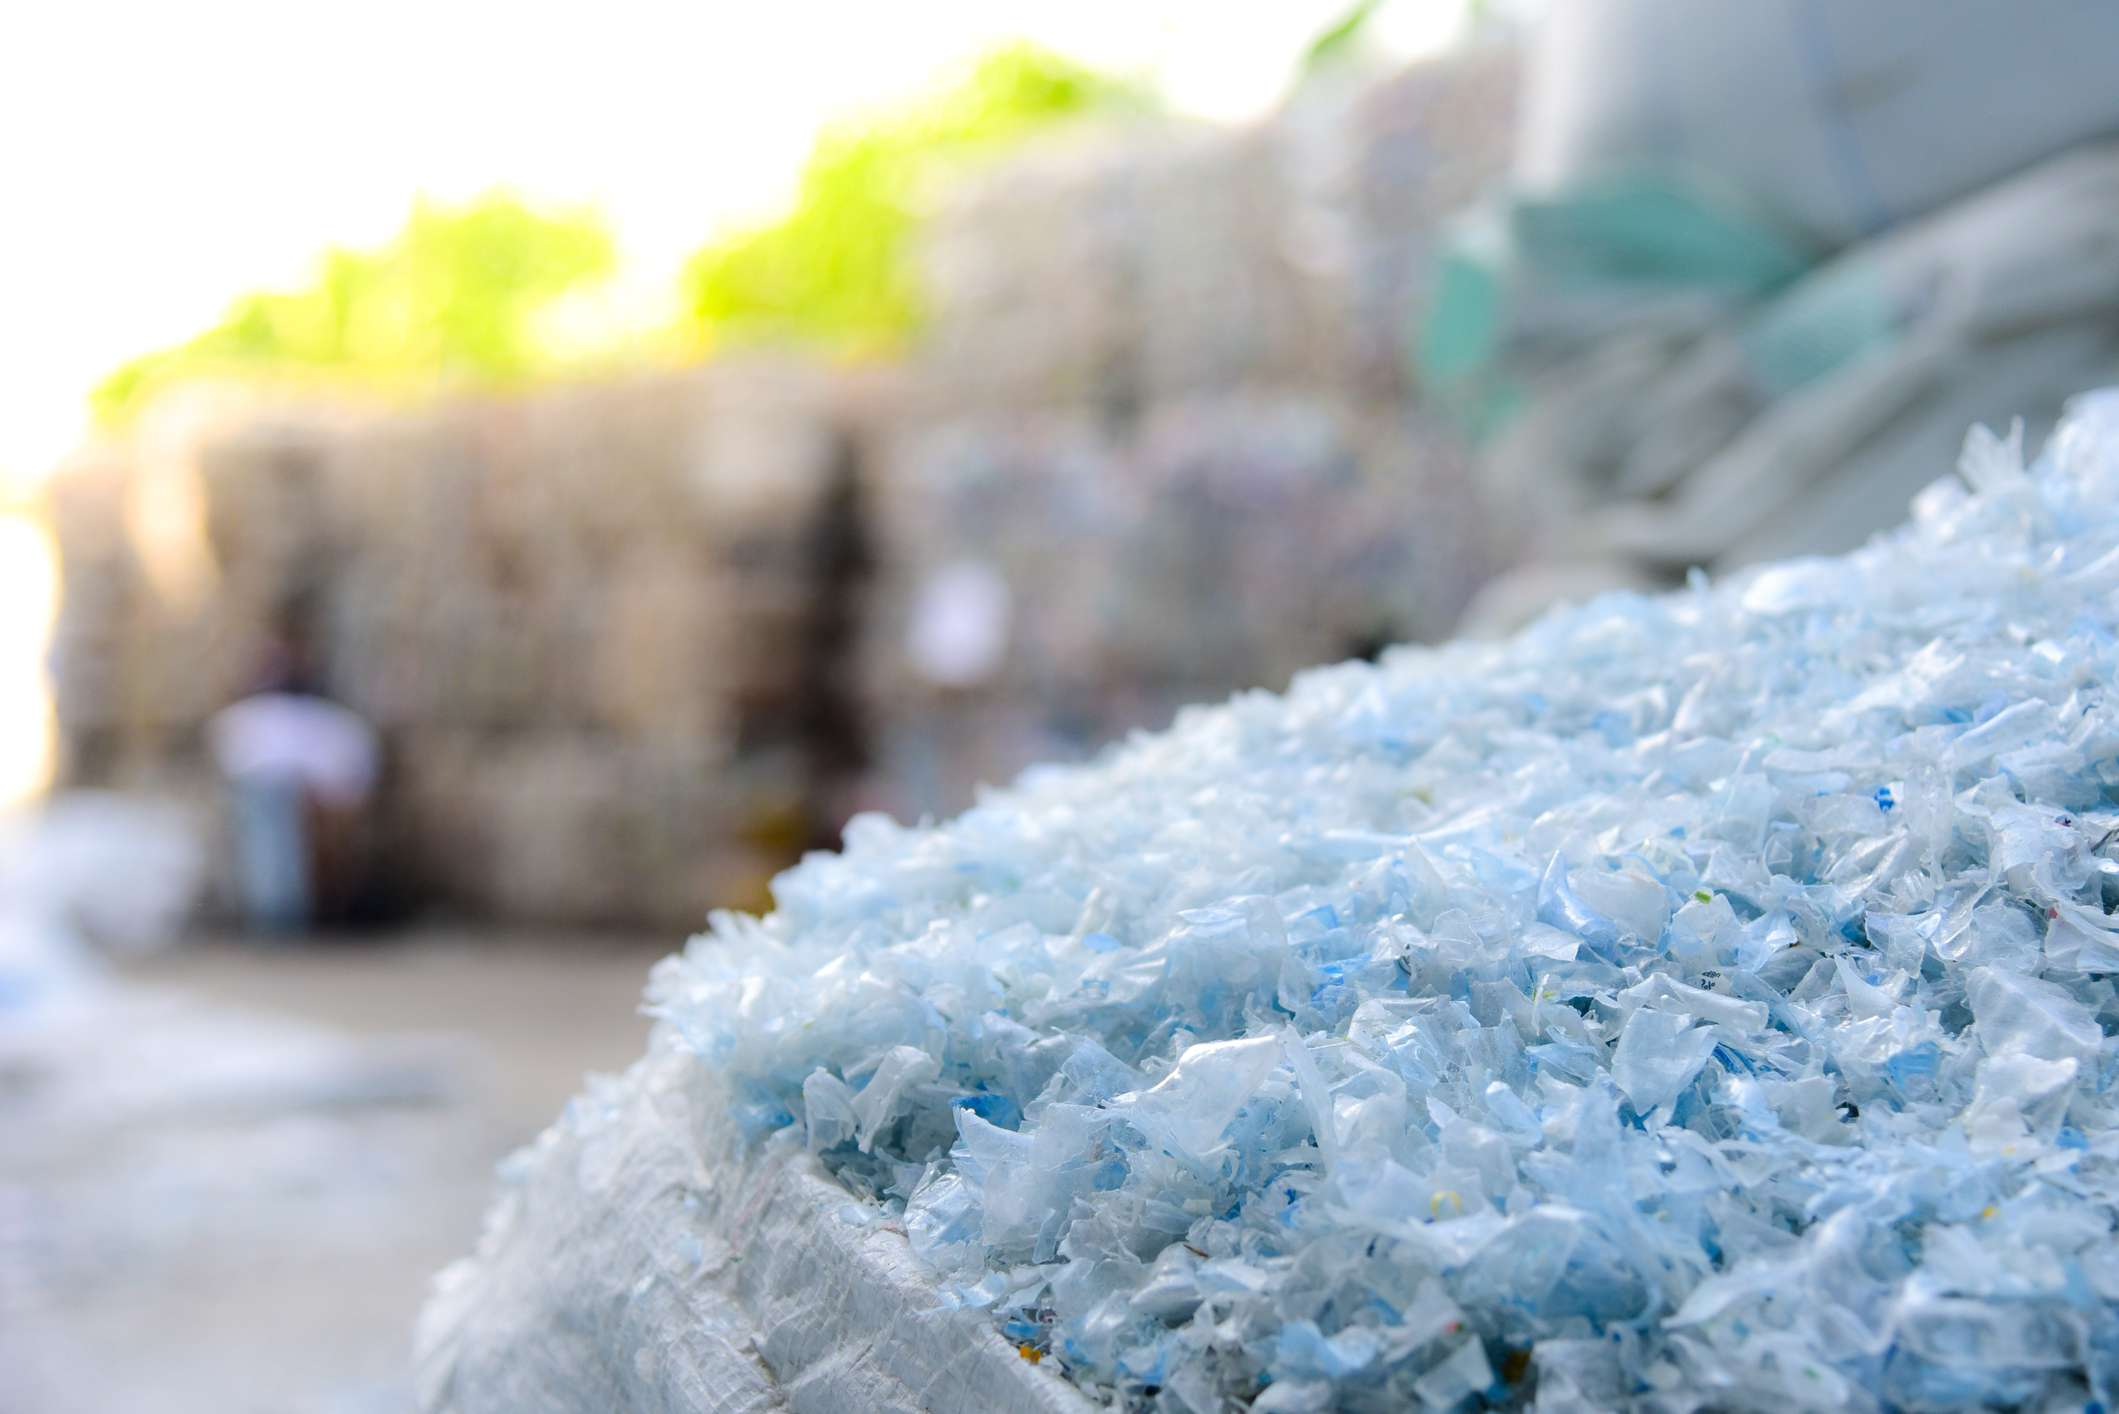 Small pieces of plastic at recycling plant.